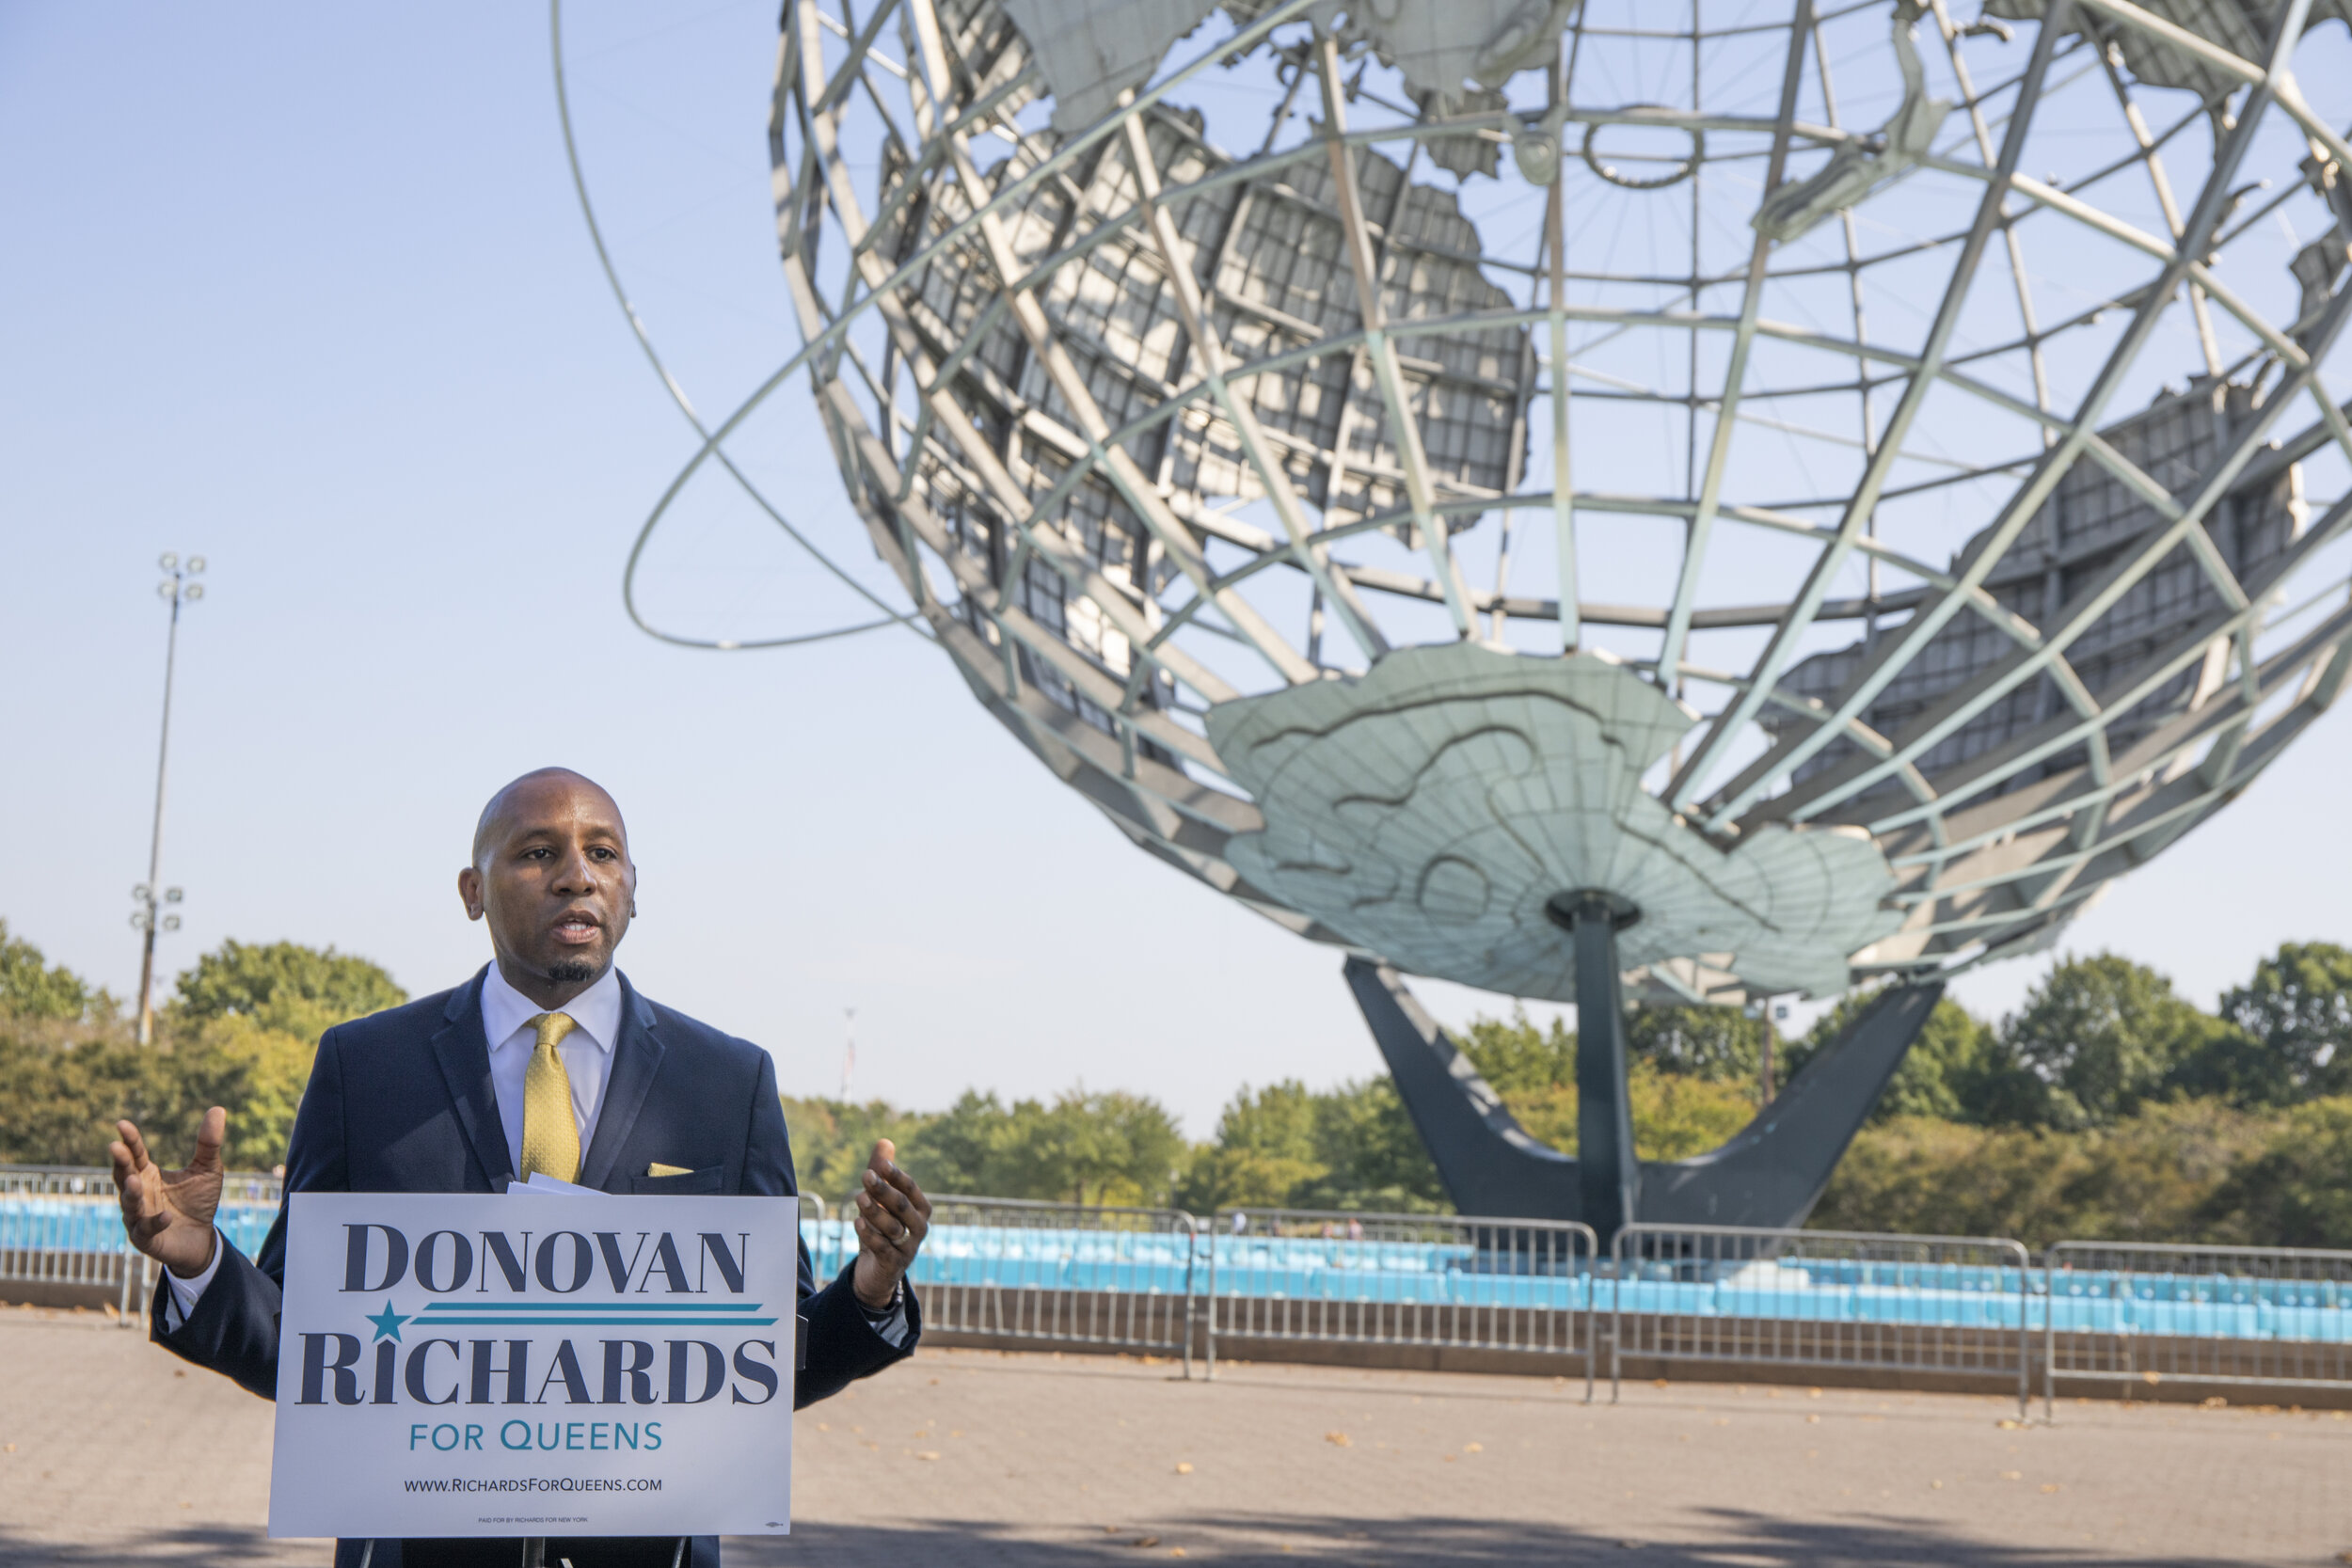 Councilmember Donovan Richards officially announced his candidacy for Queens borough president. Photo courtesy of Richards' campaign